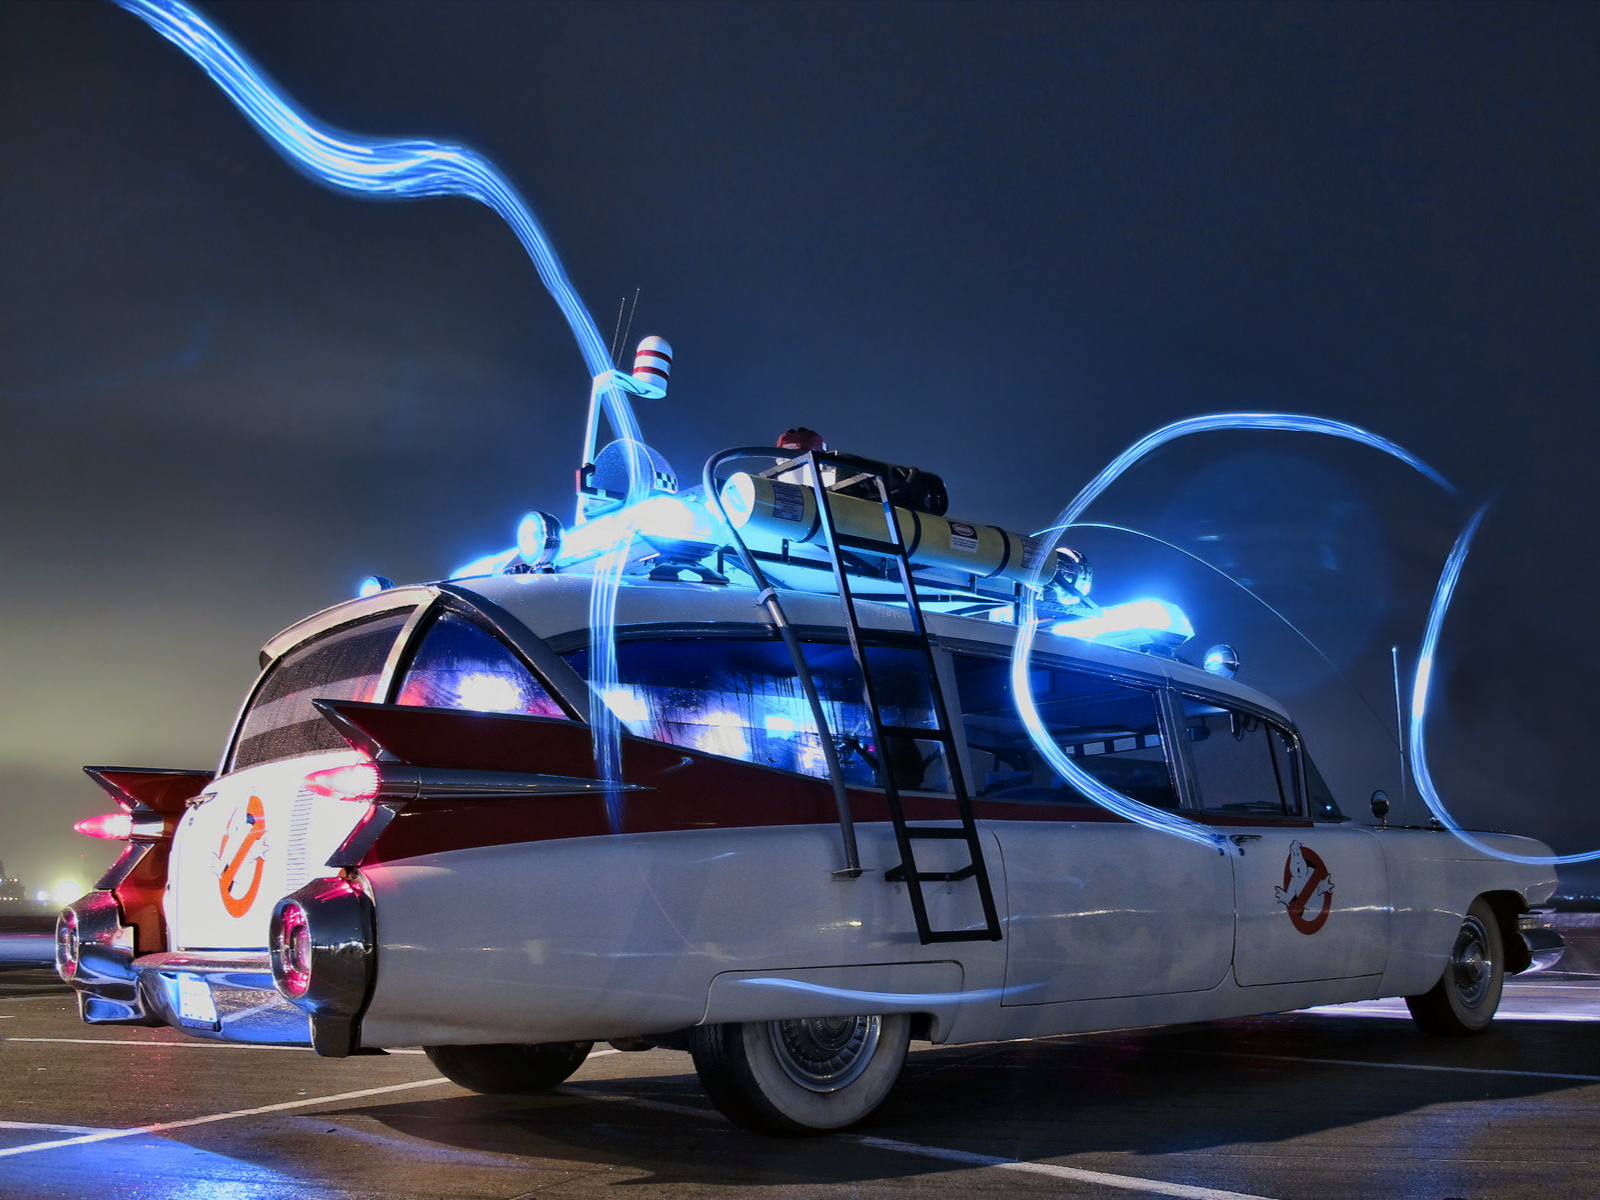 Police Car Wallpaper Mobile Cadillac Ambulance Ectomobile By Miller Meteor 1984